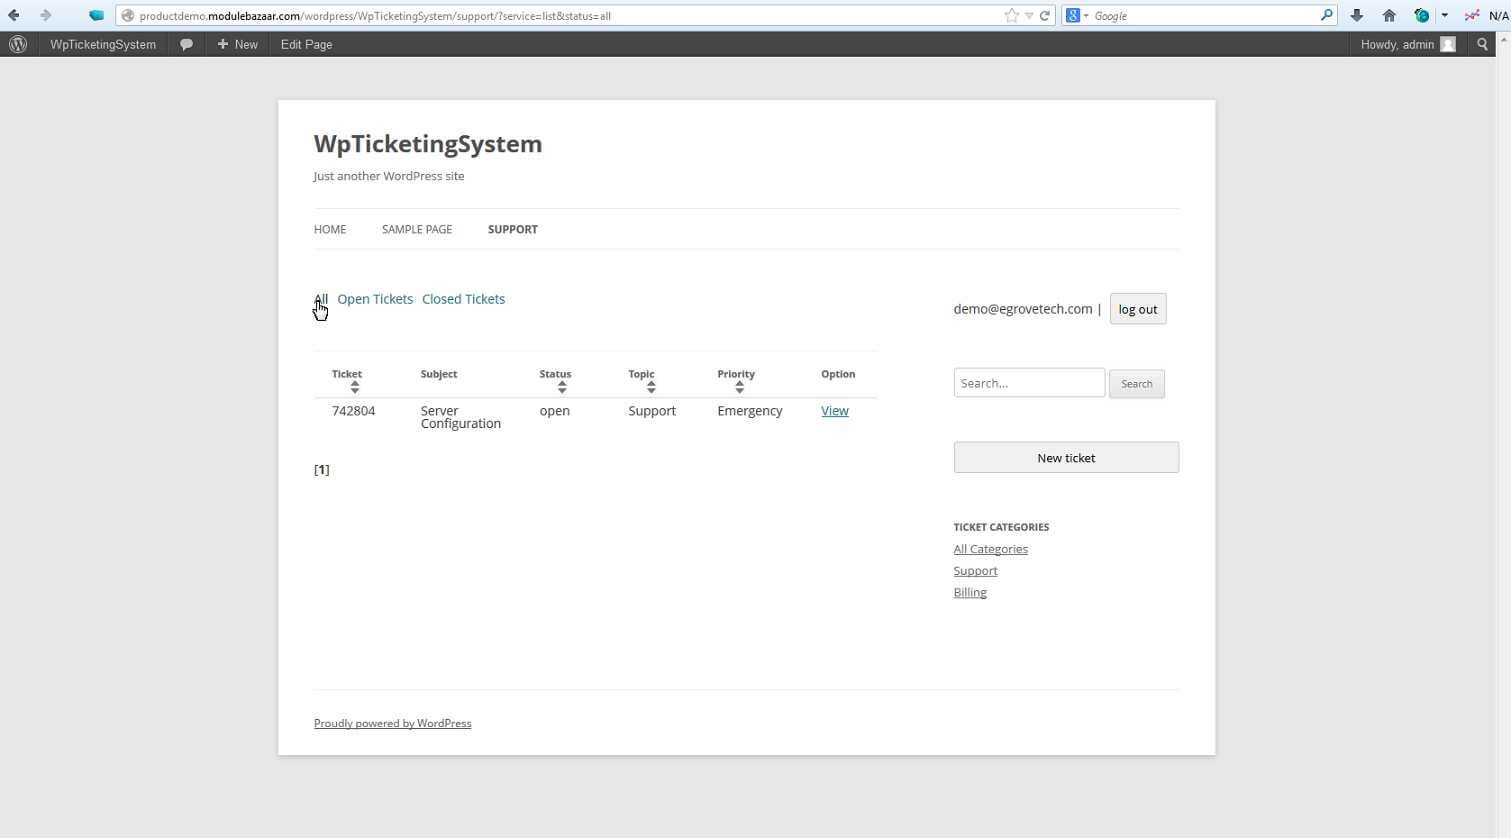 WP Ticketing System